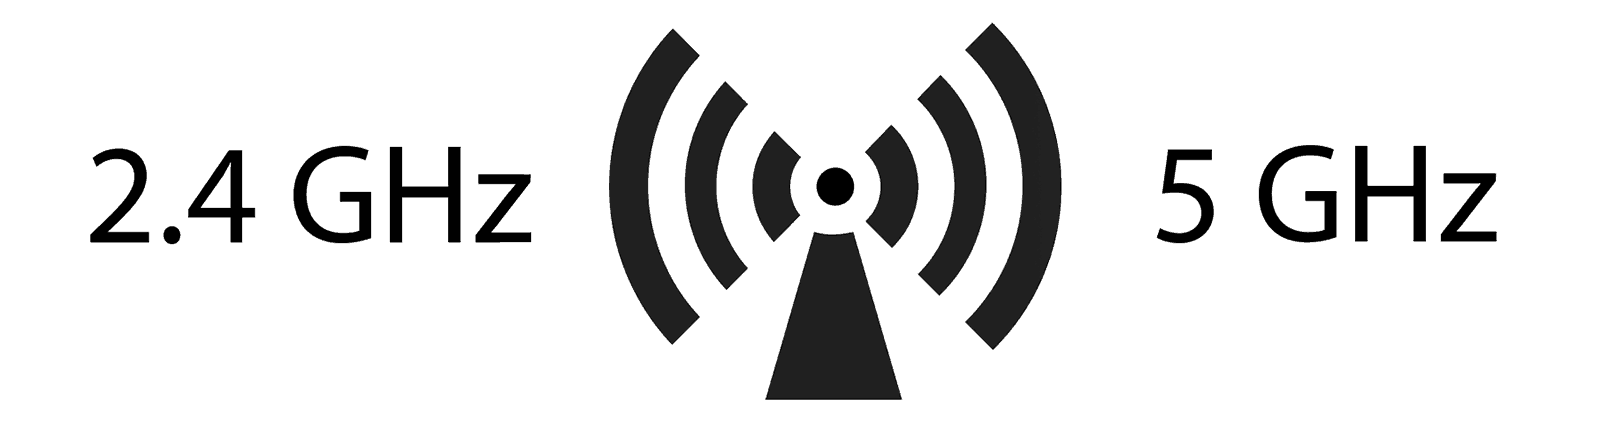 WiFi differences between 2.4GHz and 5GHz